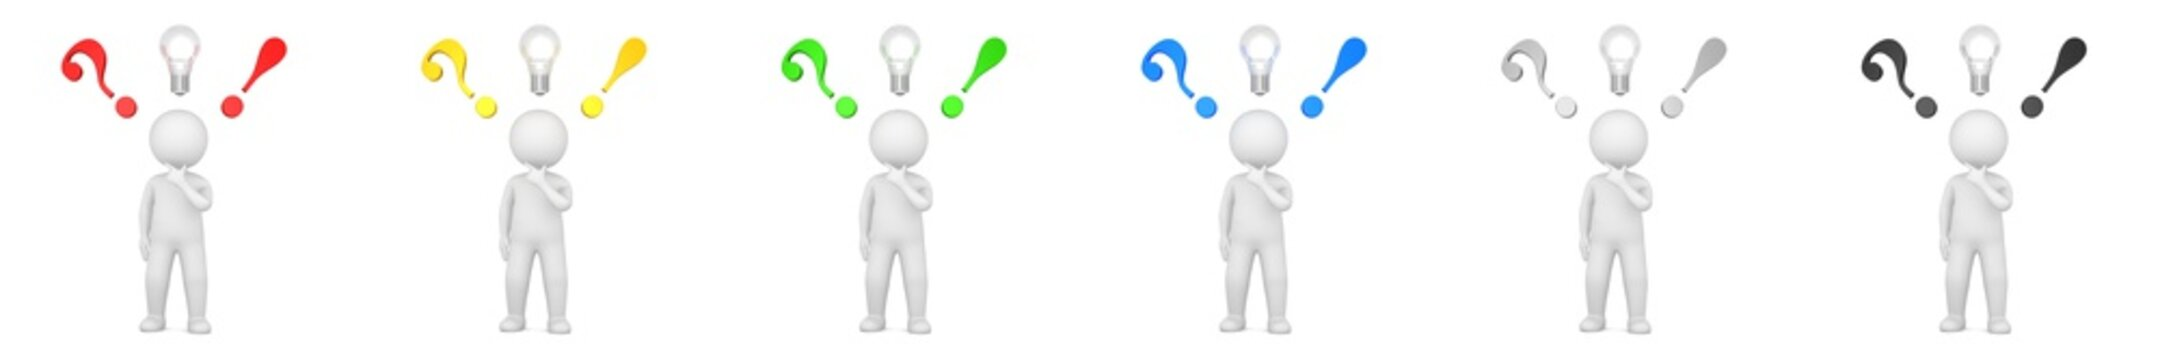 question mark ideas light bulb exclamation point asking answering man 3d render red black green blue